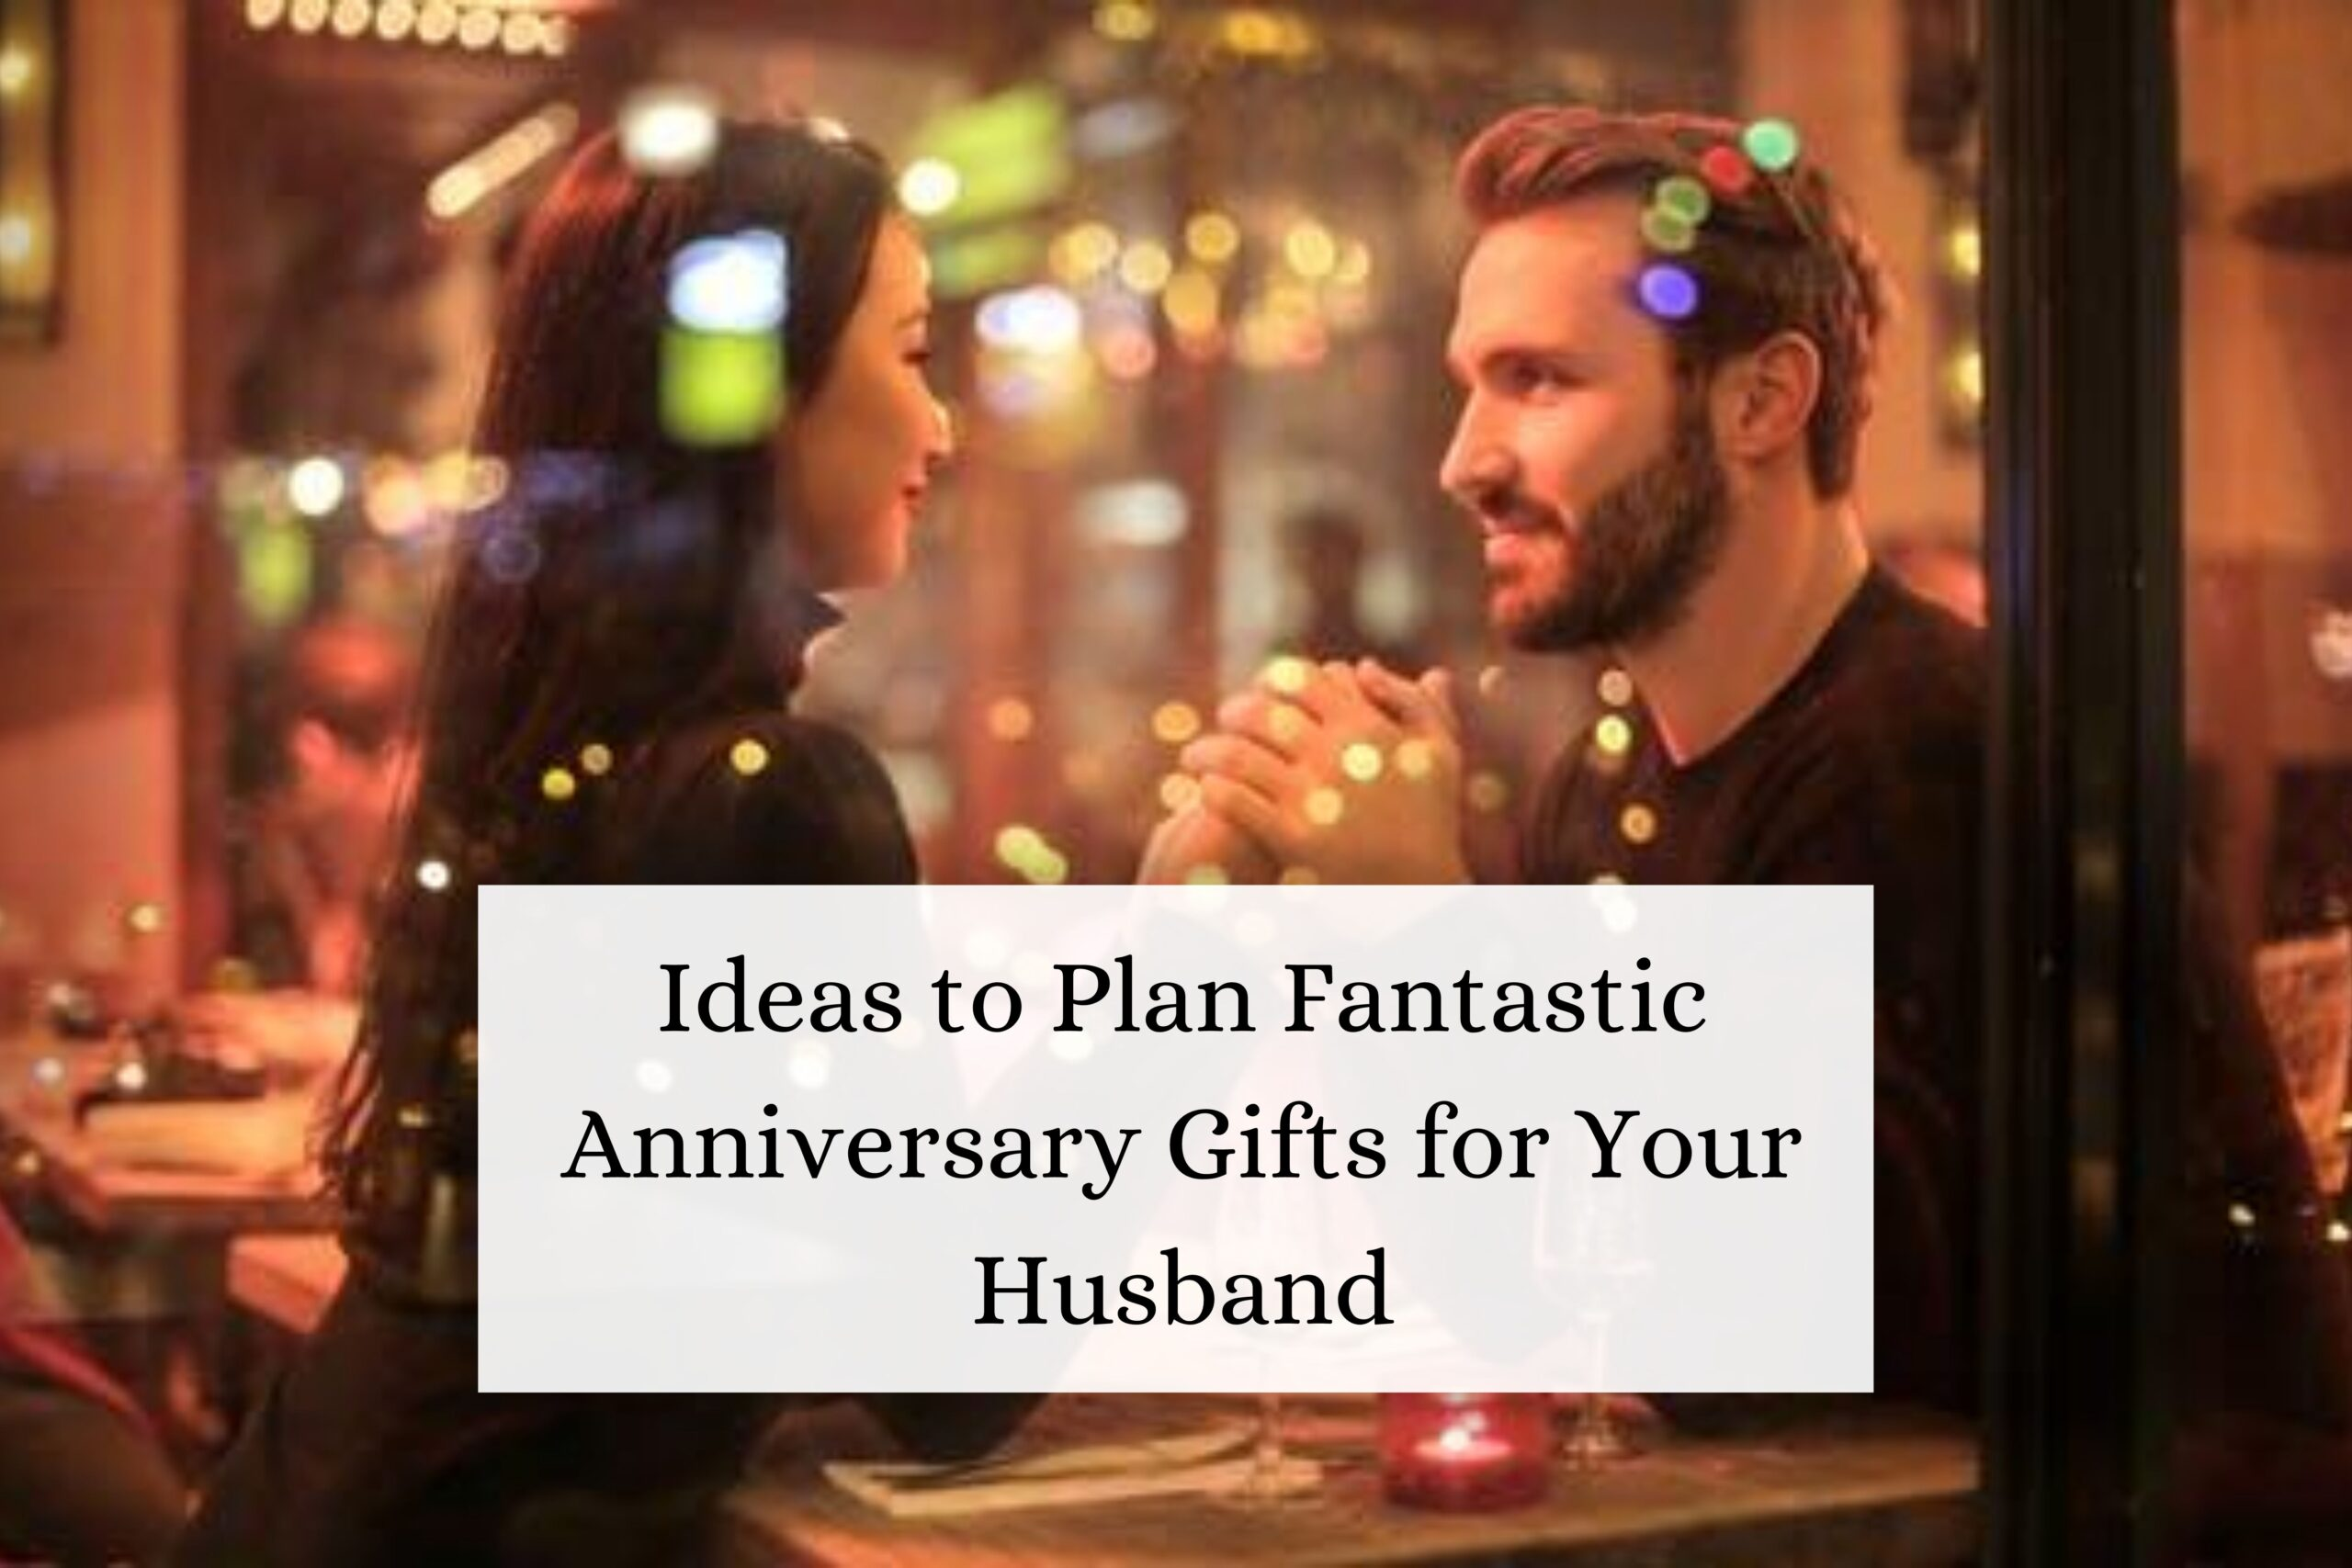 Ideas to Plan Fantastic Anniversary Gifts for Your Husband